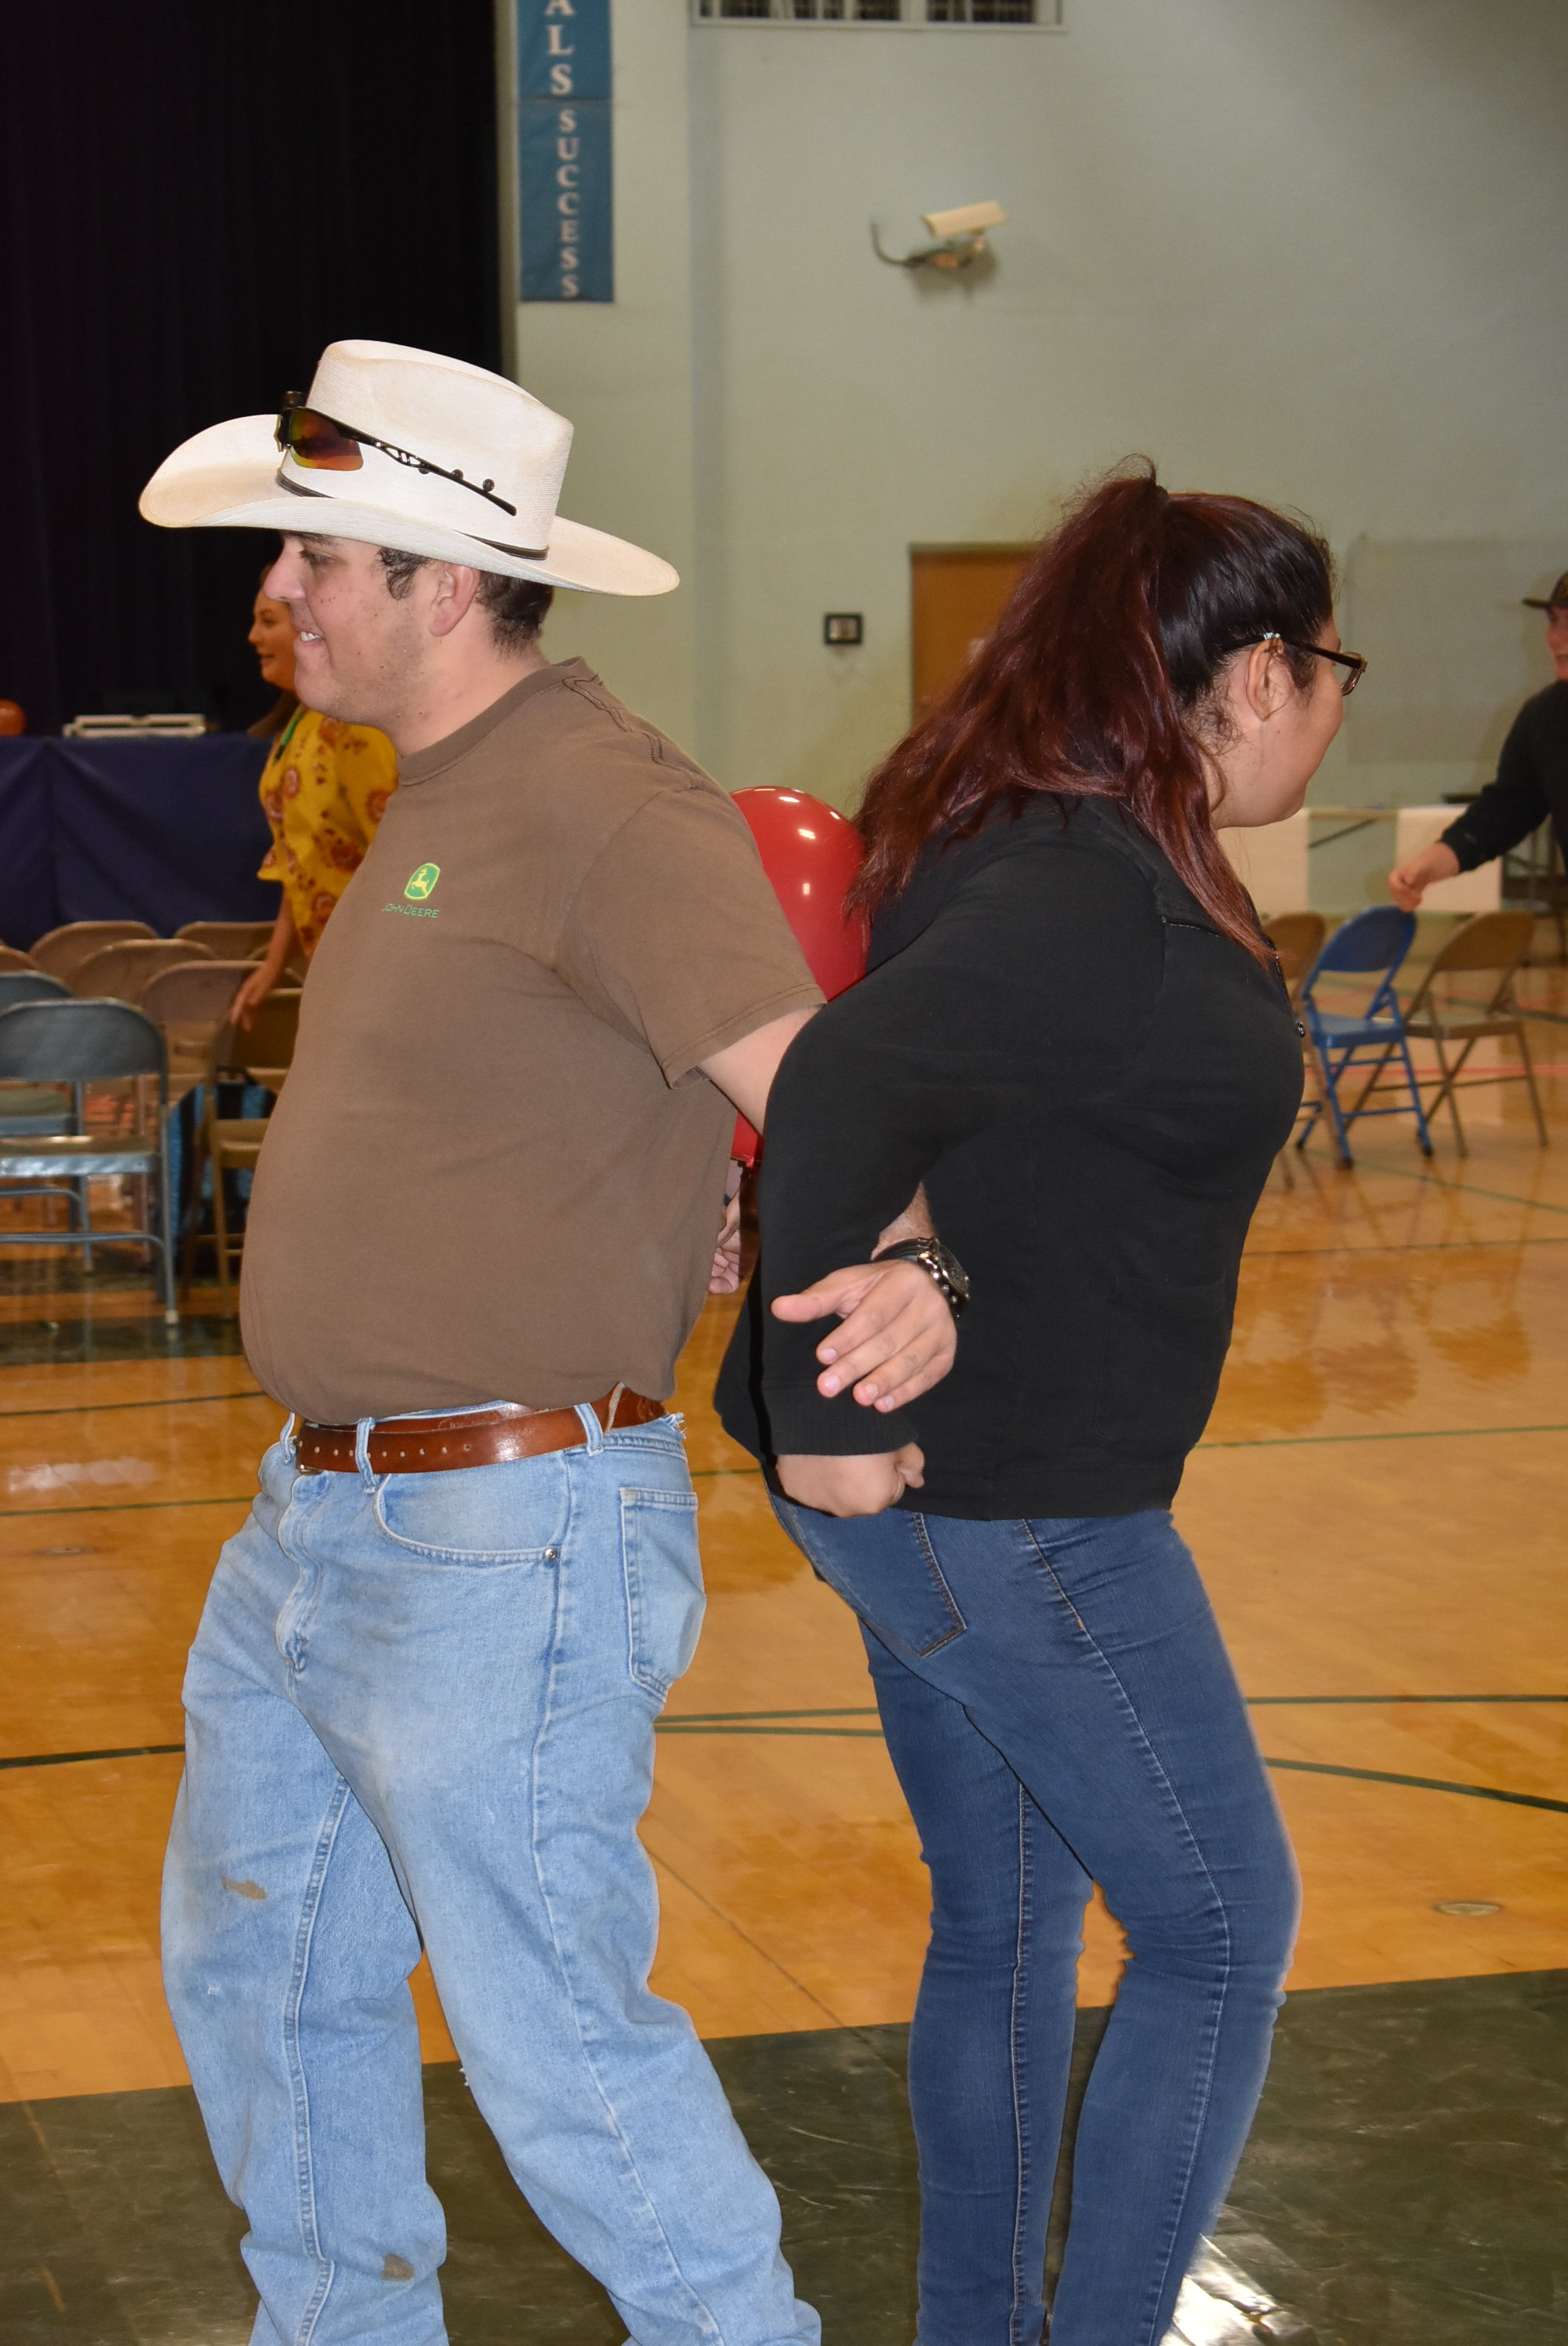 A man in a cowboy hat and a girl in a black sweatshirt stand back to back with their arms linked at the elbow. A red balloon is lodged within the space between their backs.